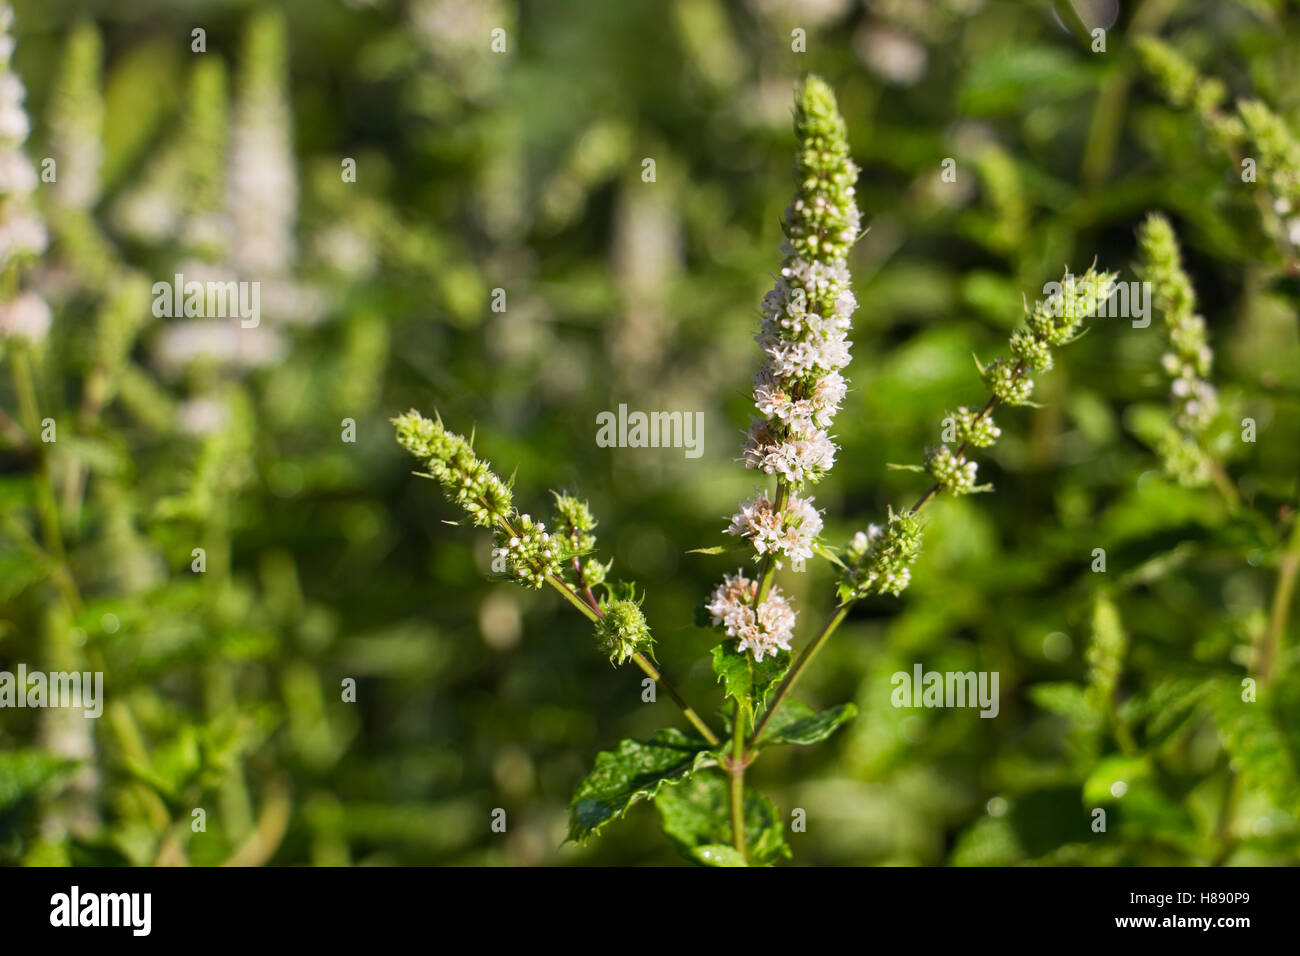 White flowers of a mint plant in august uk stock photo 125588017 white flowers of a mint plant in august uk mightylinksfo